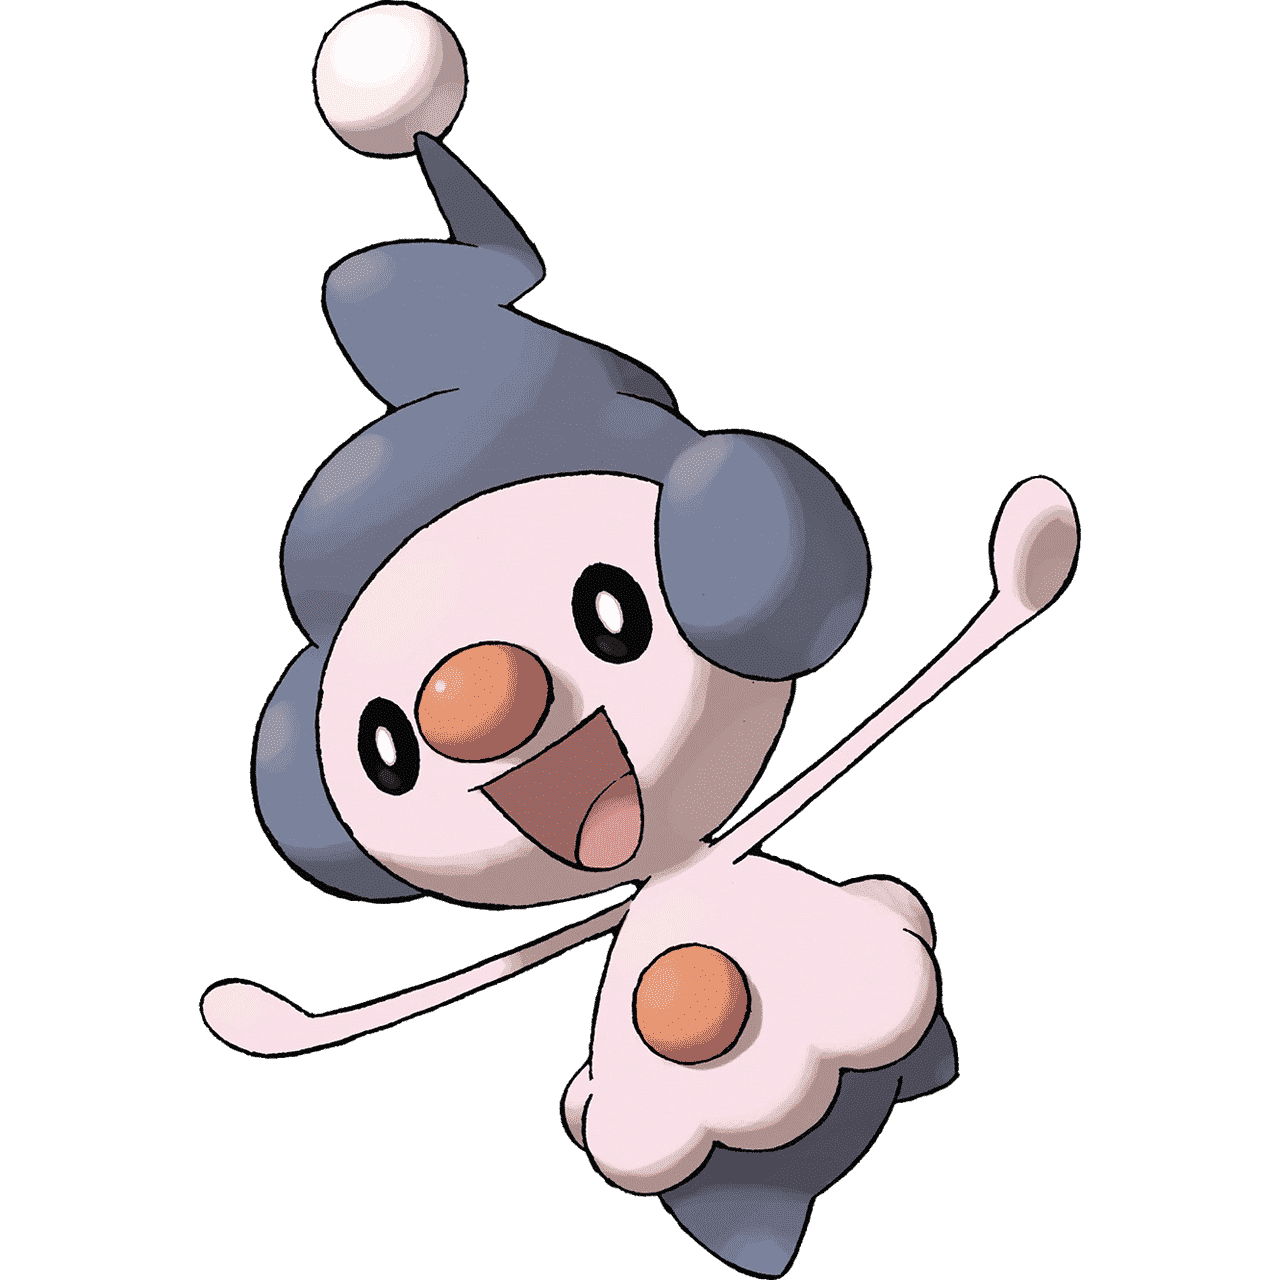 Pokémon Artwork Mime Jr.